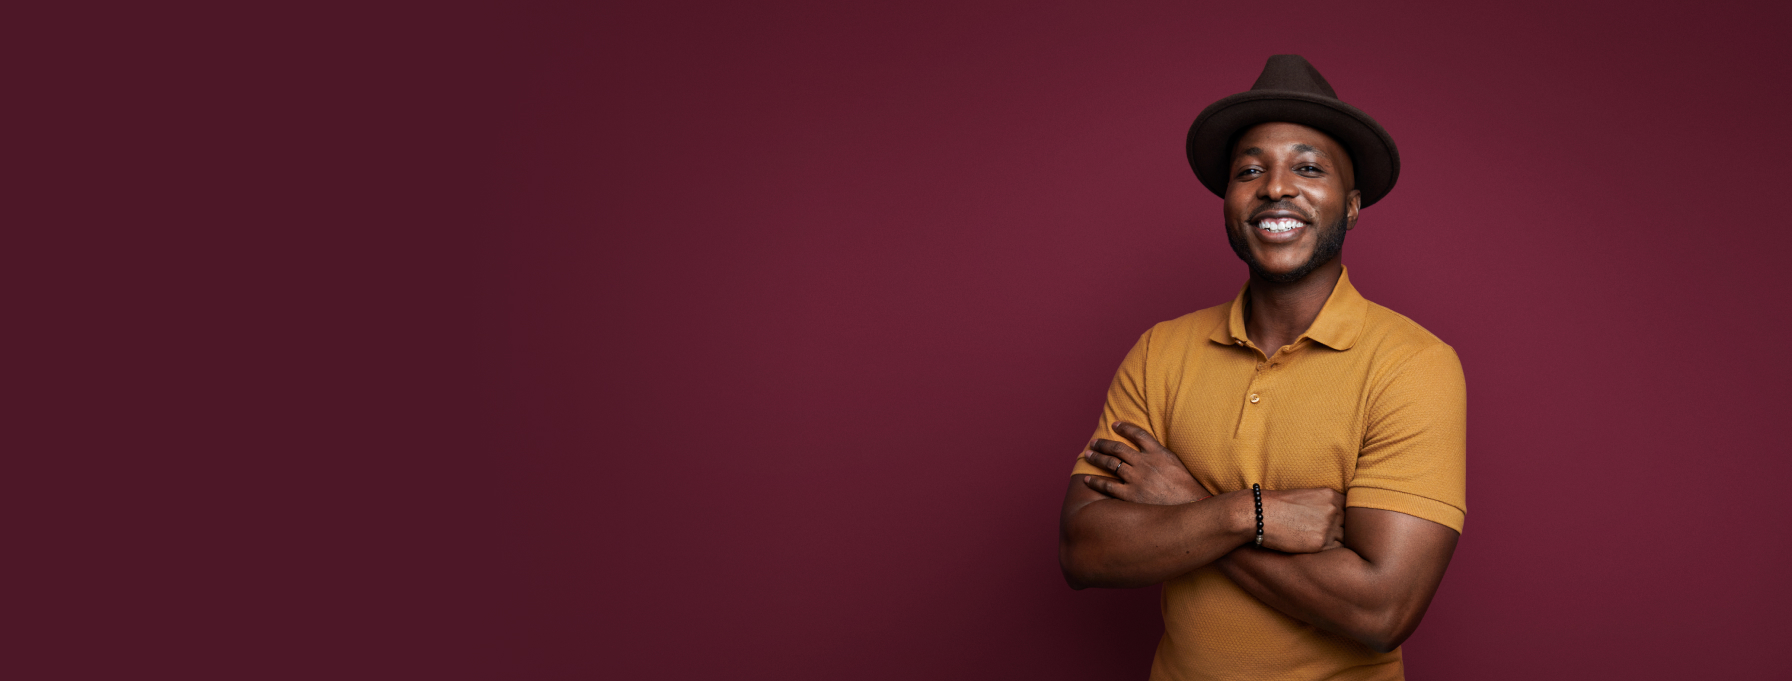 Smiling person on maroon colored background with mustard colored shirt and brown hat.